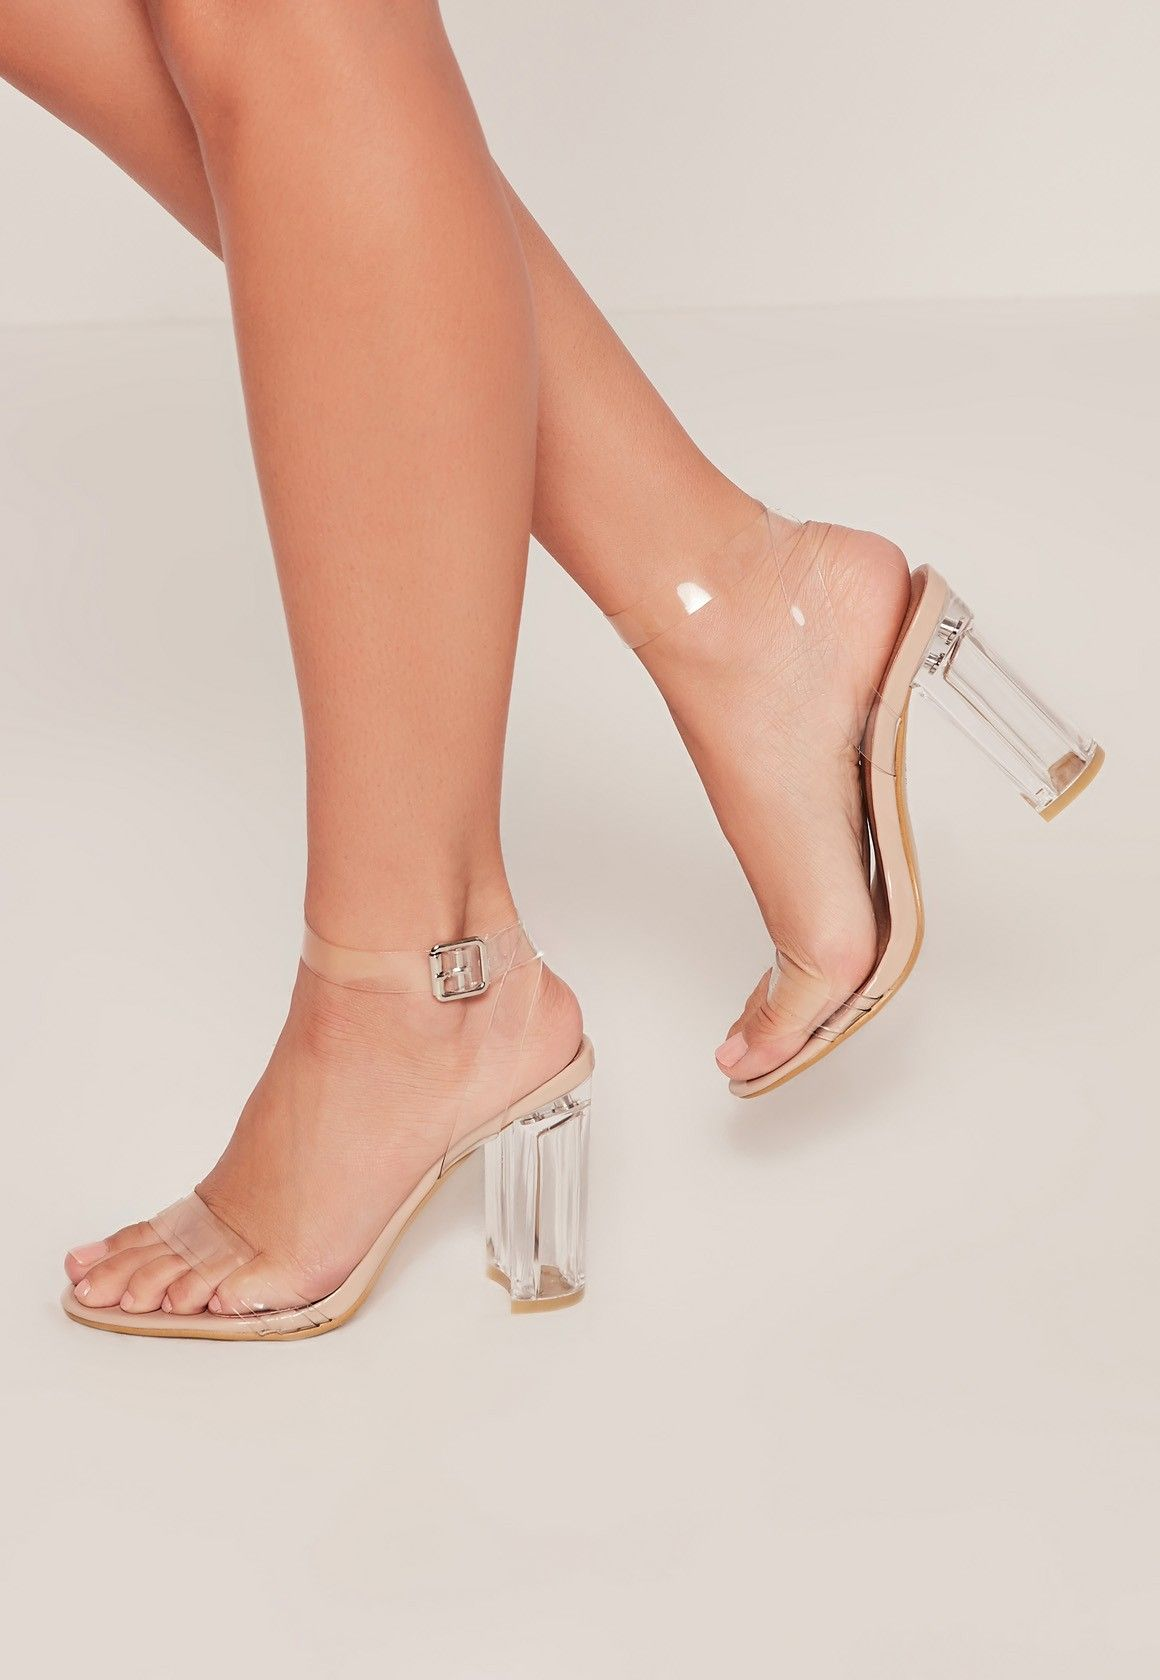 d8dbda1cad8 We're crushin' on these clear perspex block heeled barely there ...